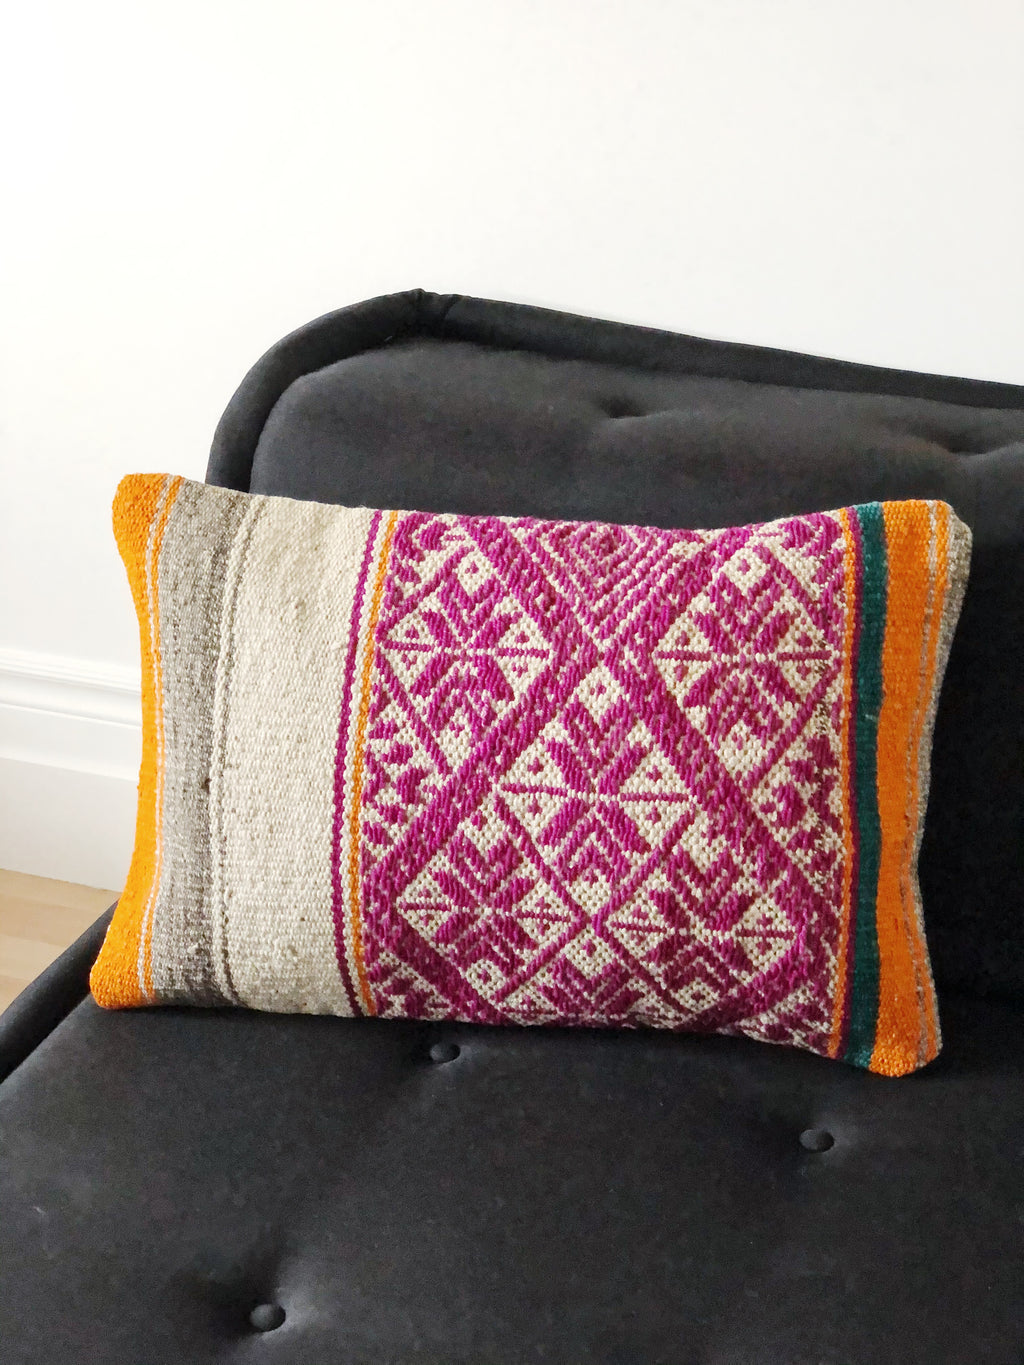 The Tarica cushion